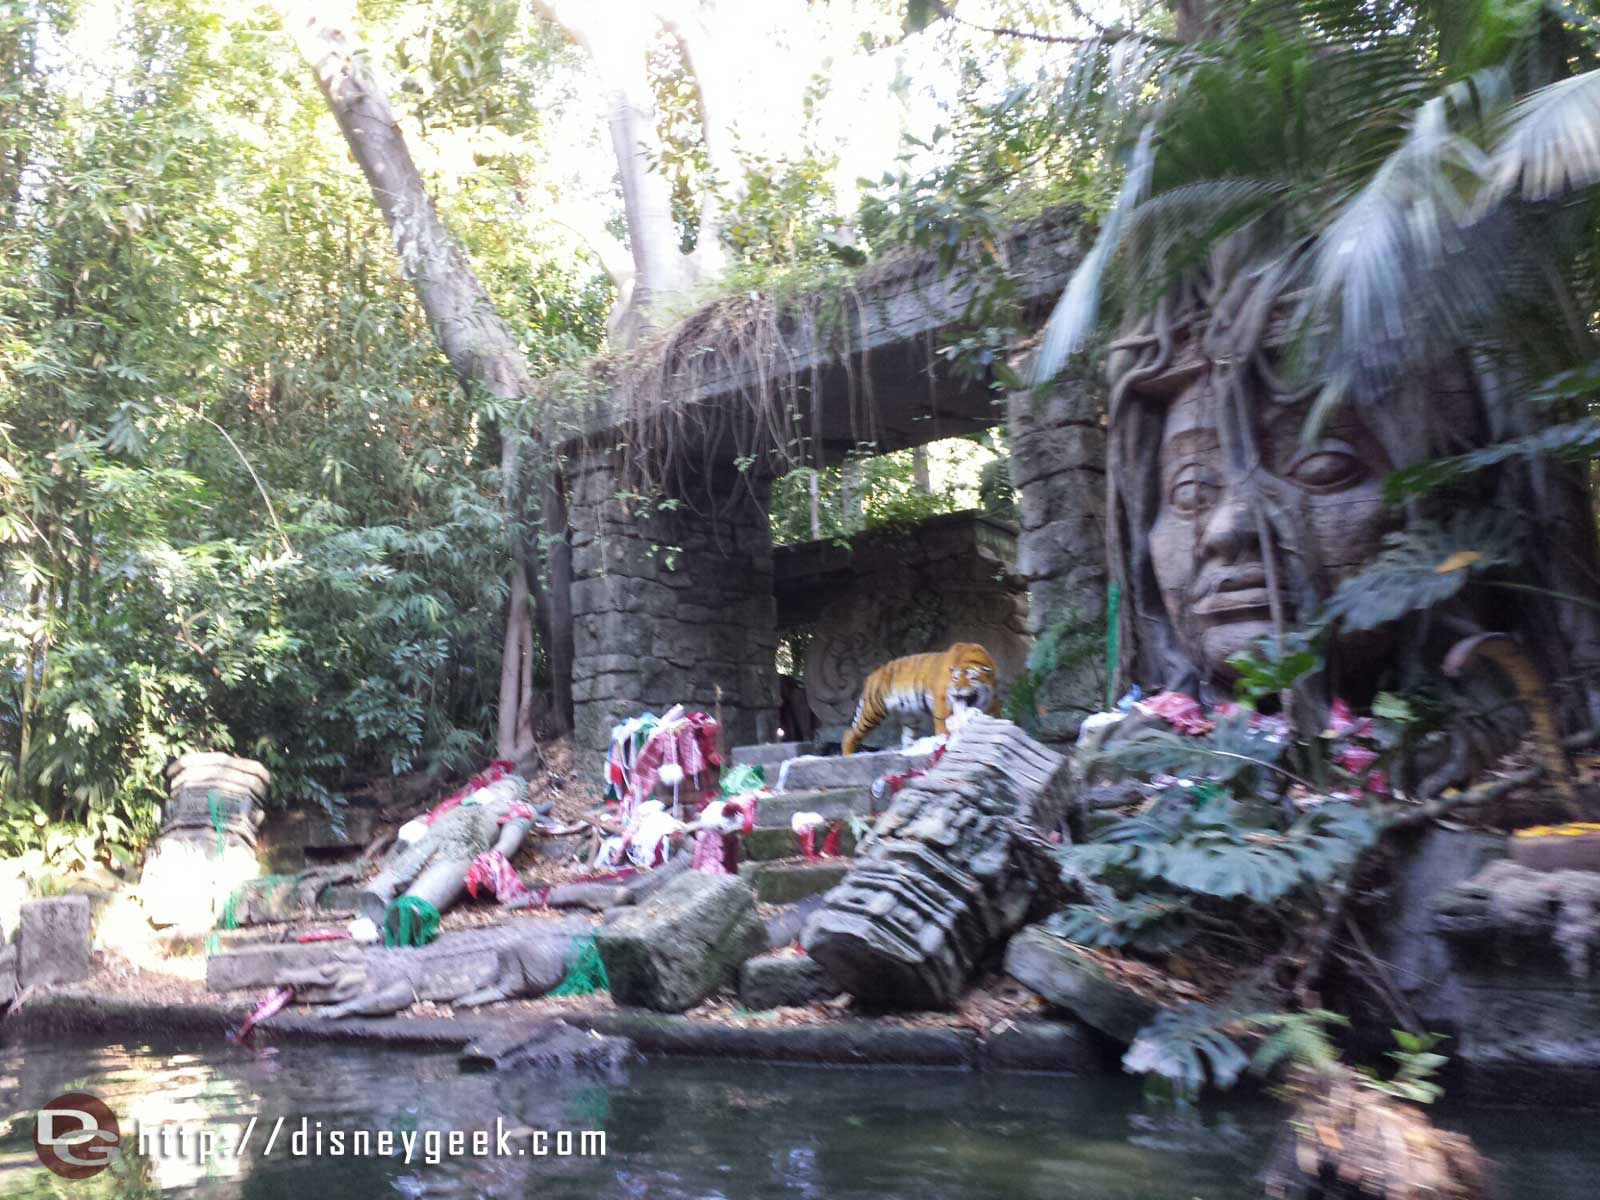 Onboard the Jingle Cruise – the tiger has found some of the lost Christmas decoration shipment